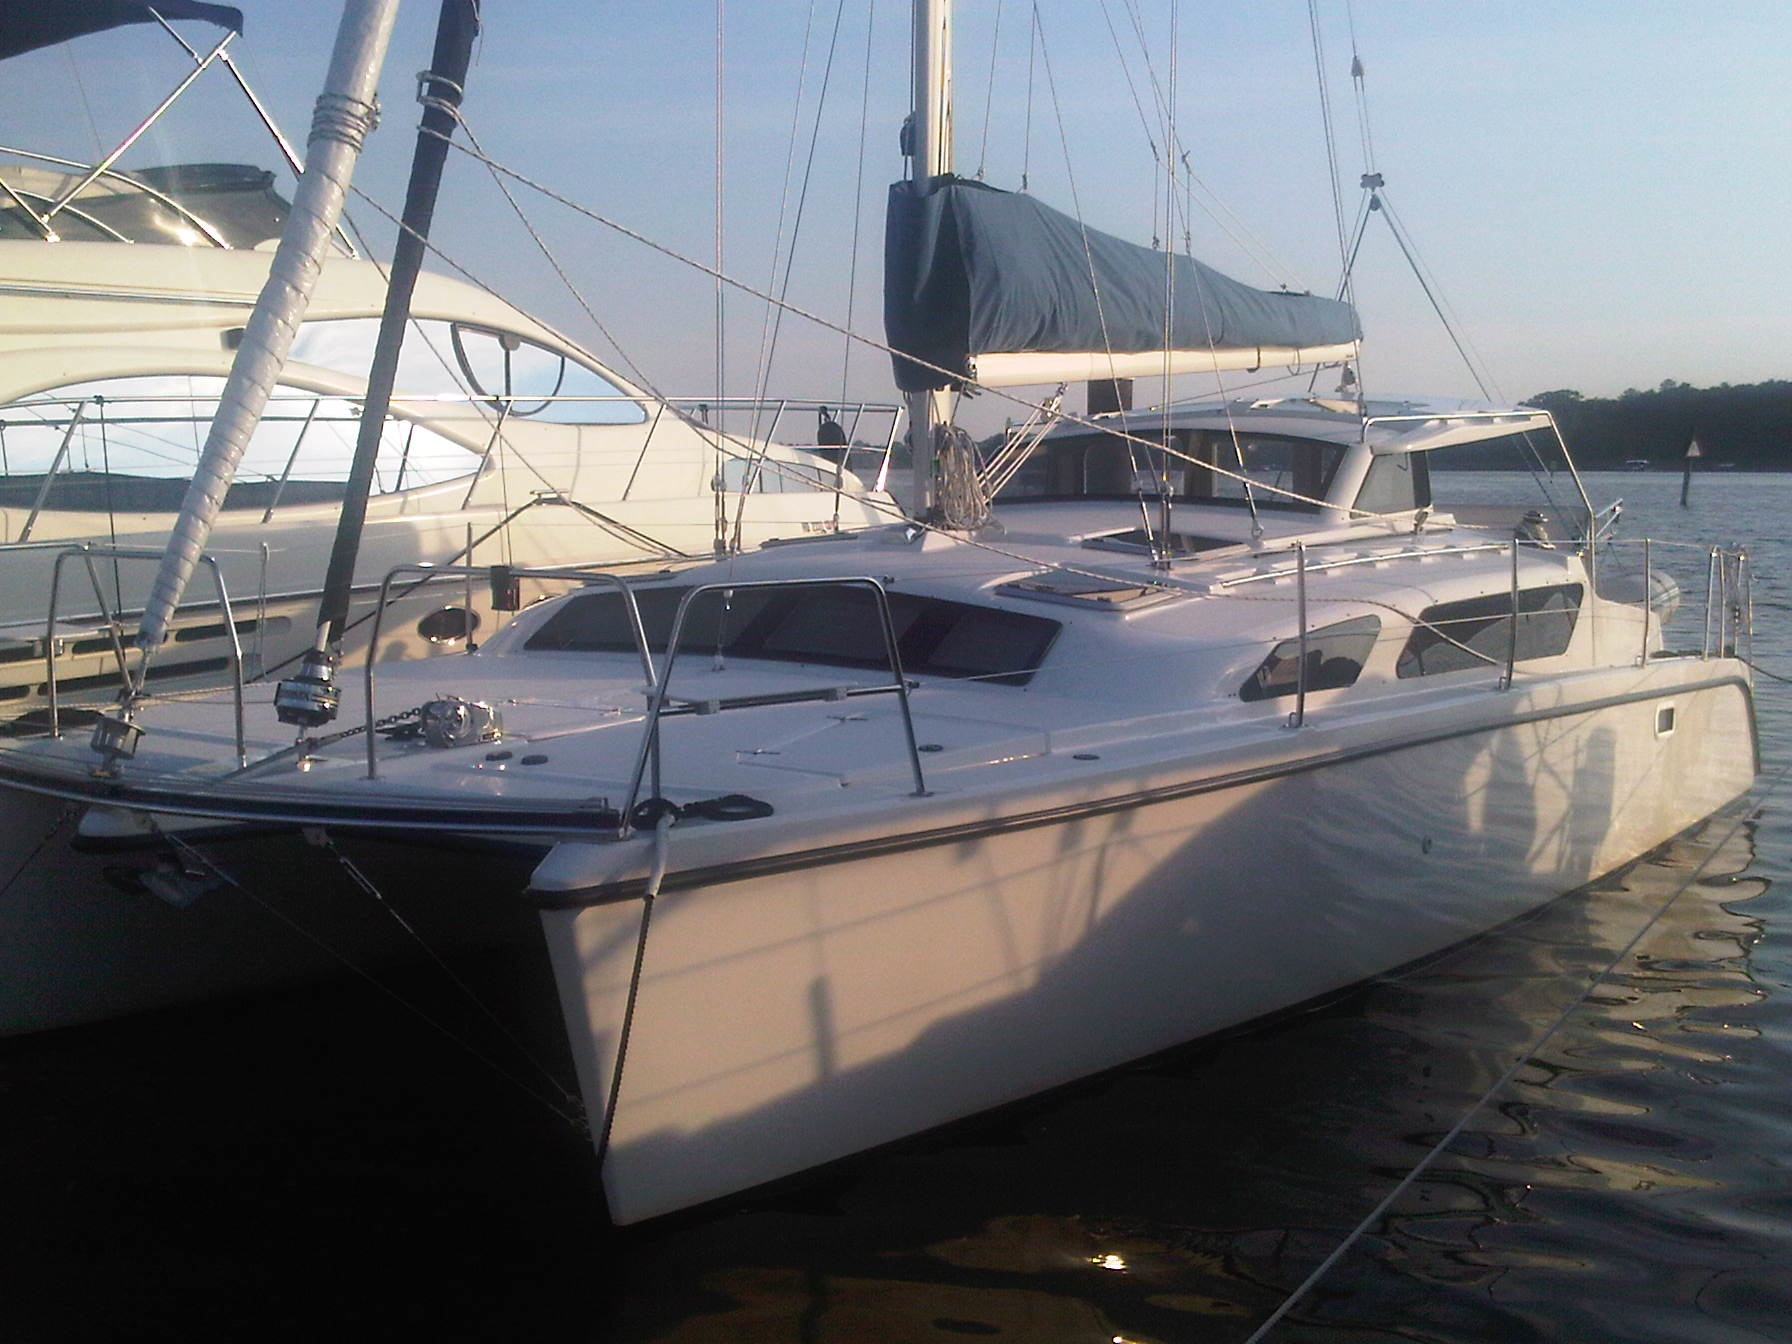 Used Sail Catamaran for Sale 2010 Gemini 105Mc Boat Highlights